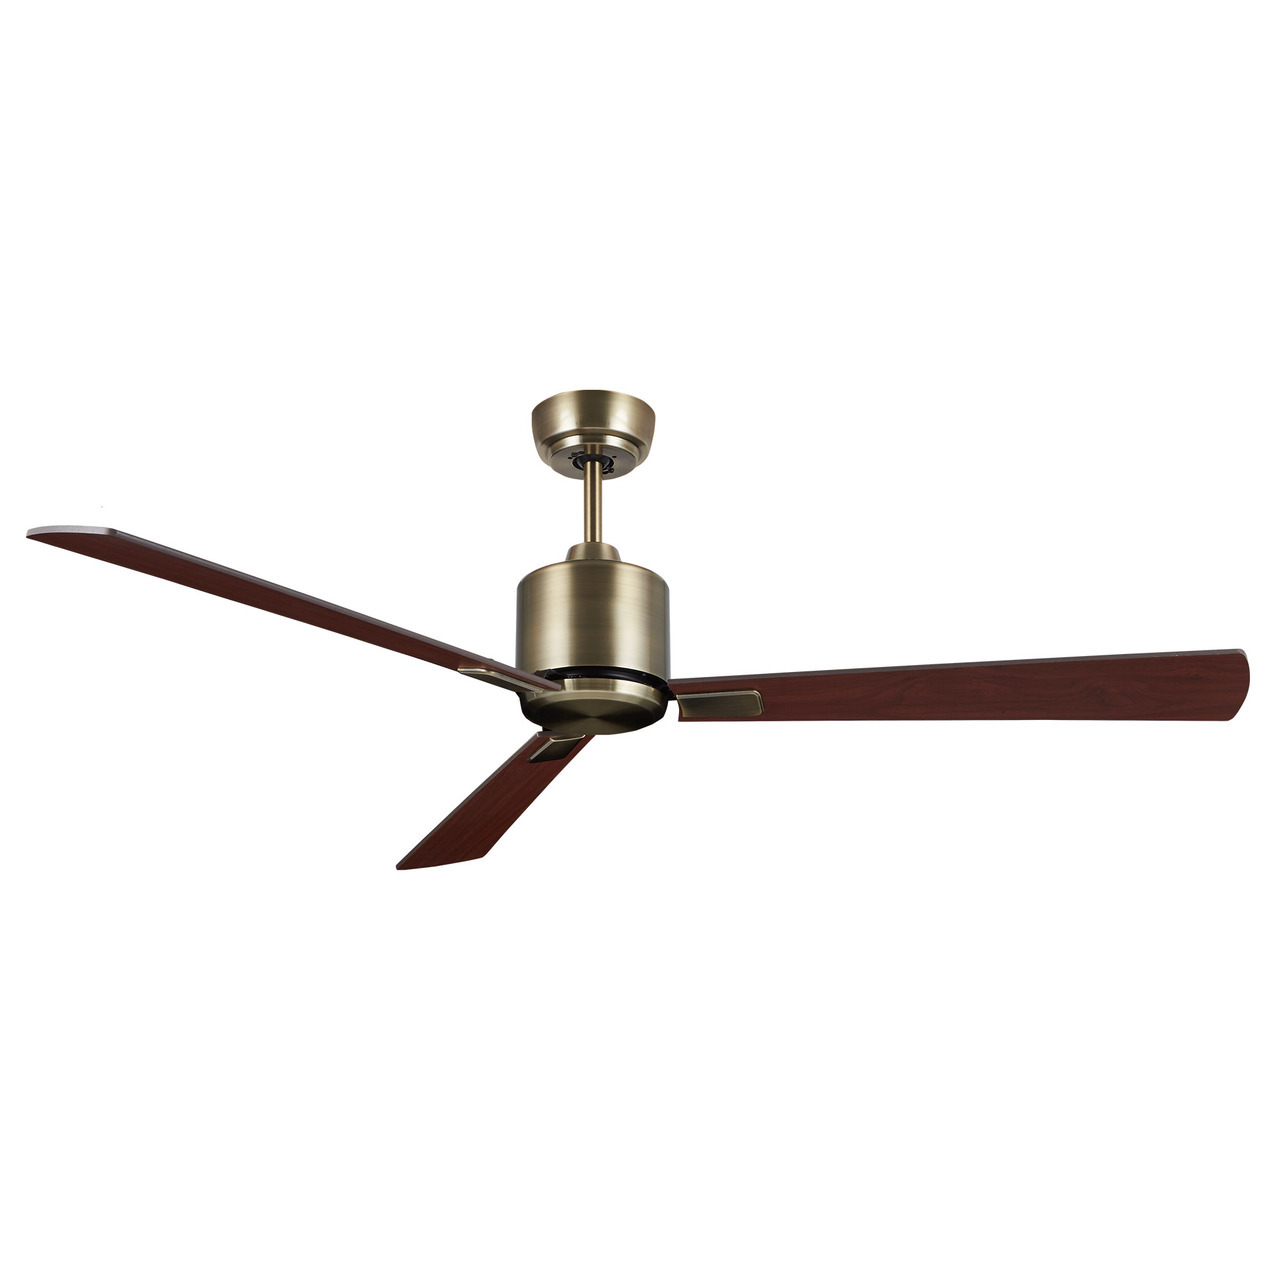 KittyHawk Ceiling Fan Antique Brass 52in